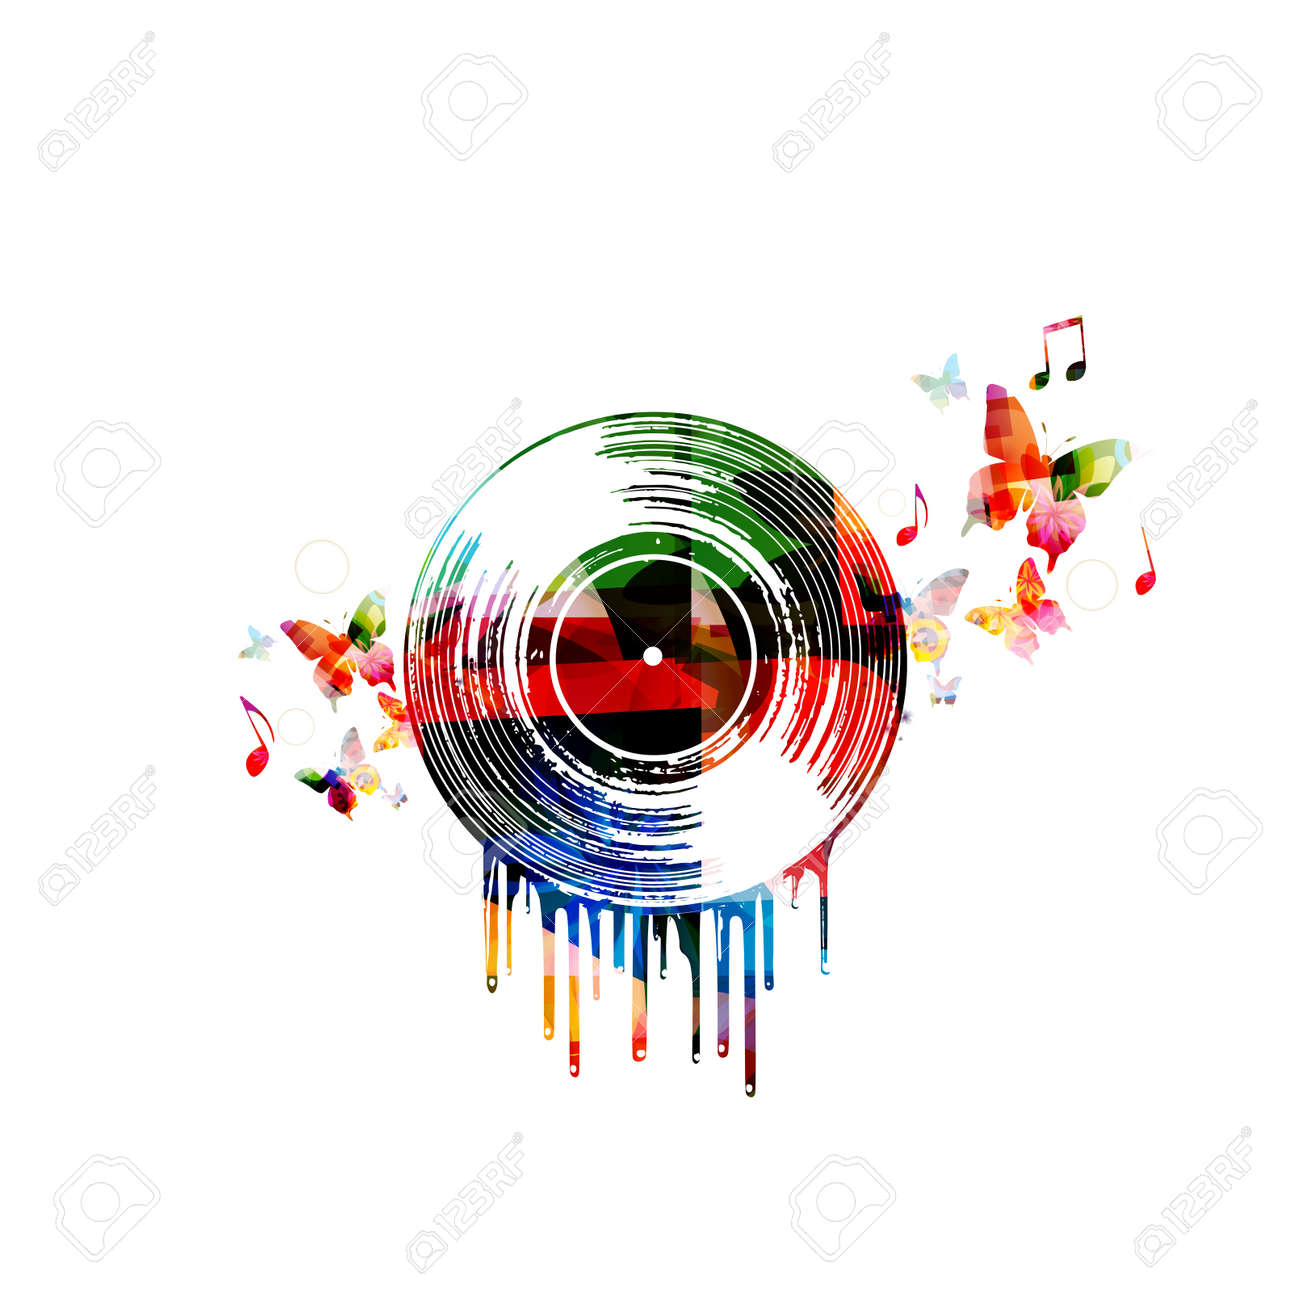 colorful music poster with vinyl record and music notes music rh 123rf com Single Music Notes Music Notes Graphics